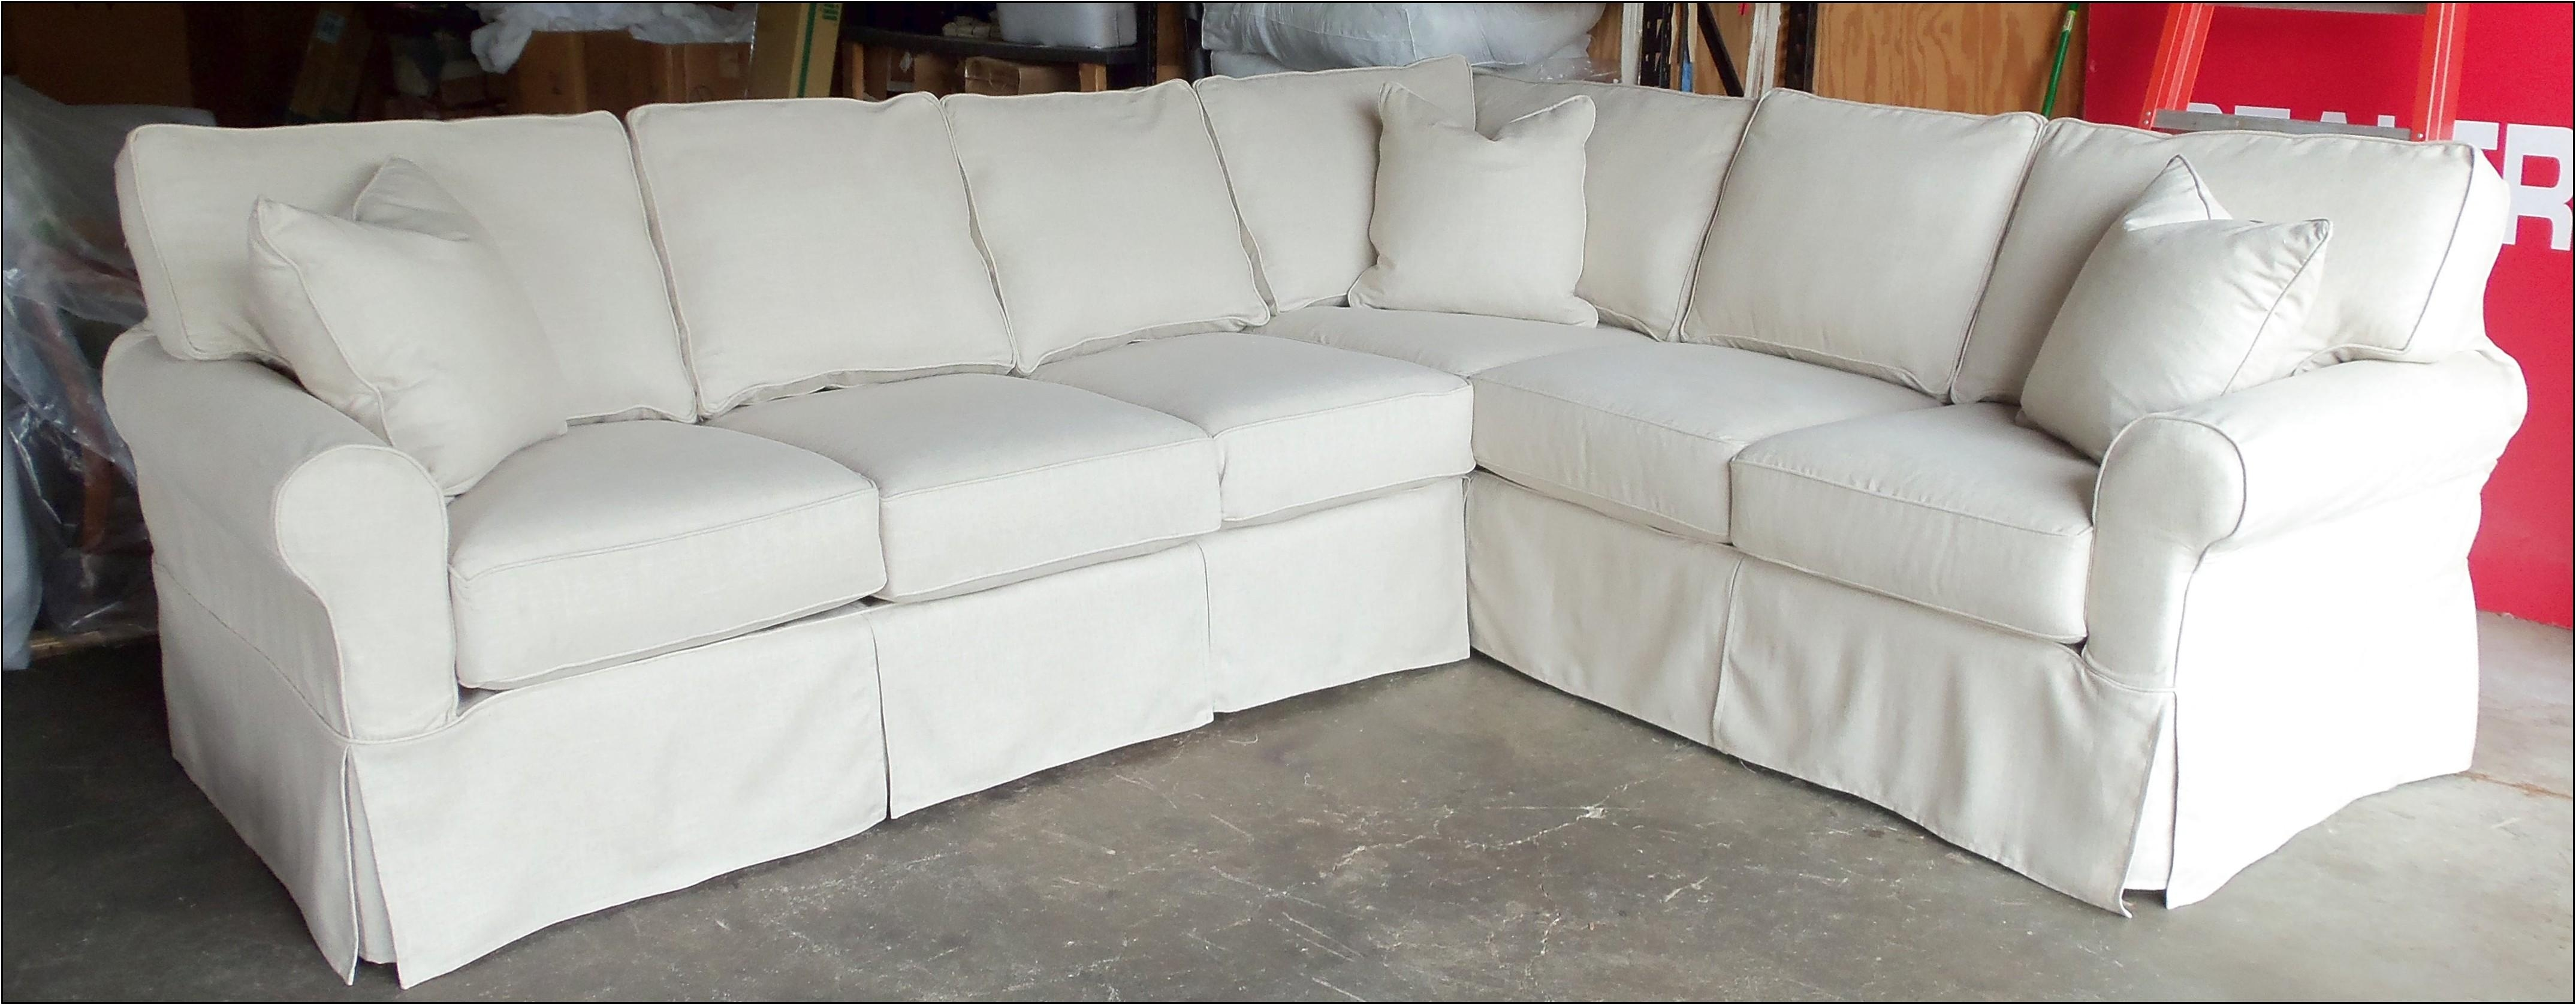 Furniture: Couch Covers At Walmart To Make Your Furniture Stylish Inside Sofas Cover For Sectional Sofas (Image 4 of 20)